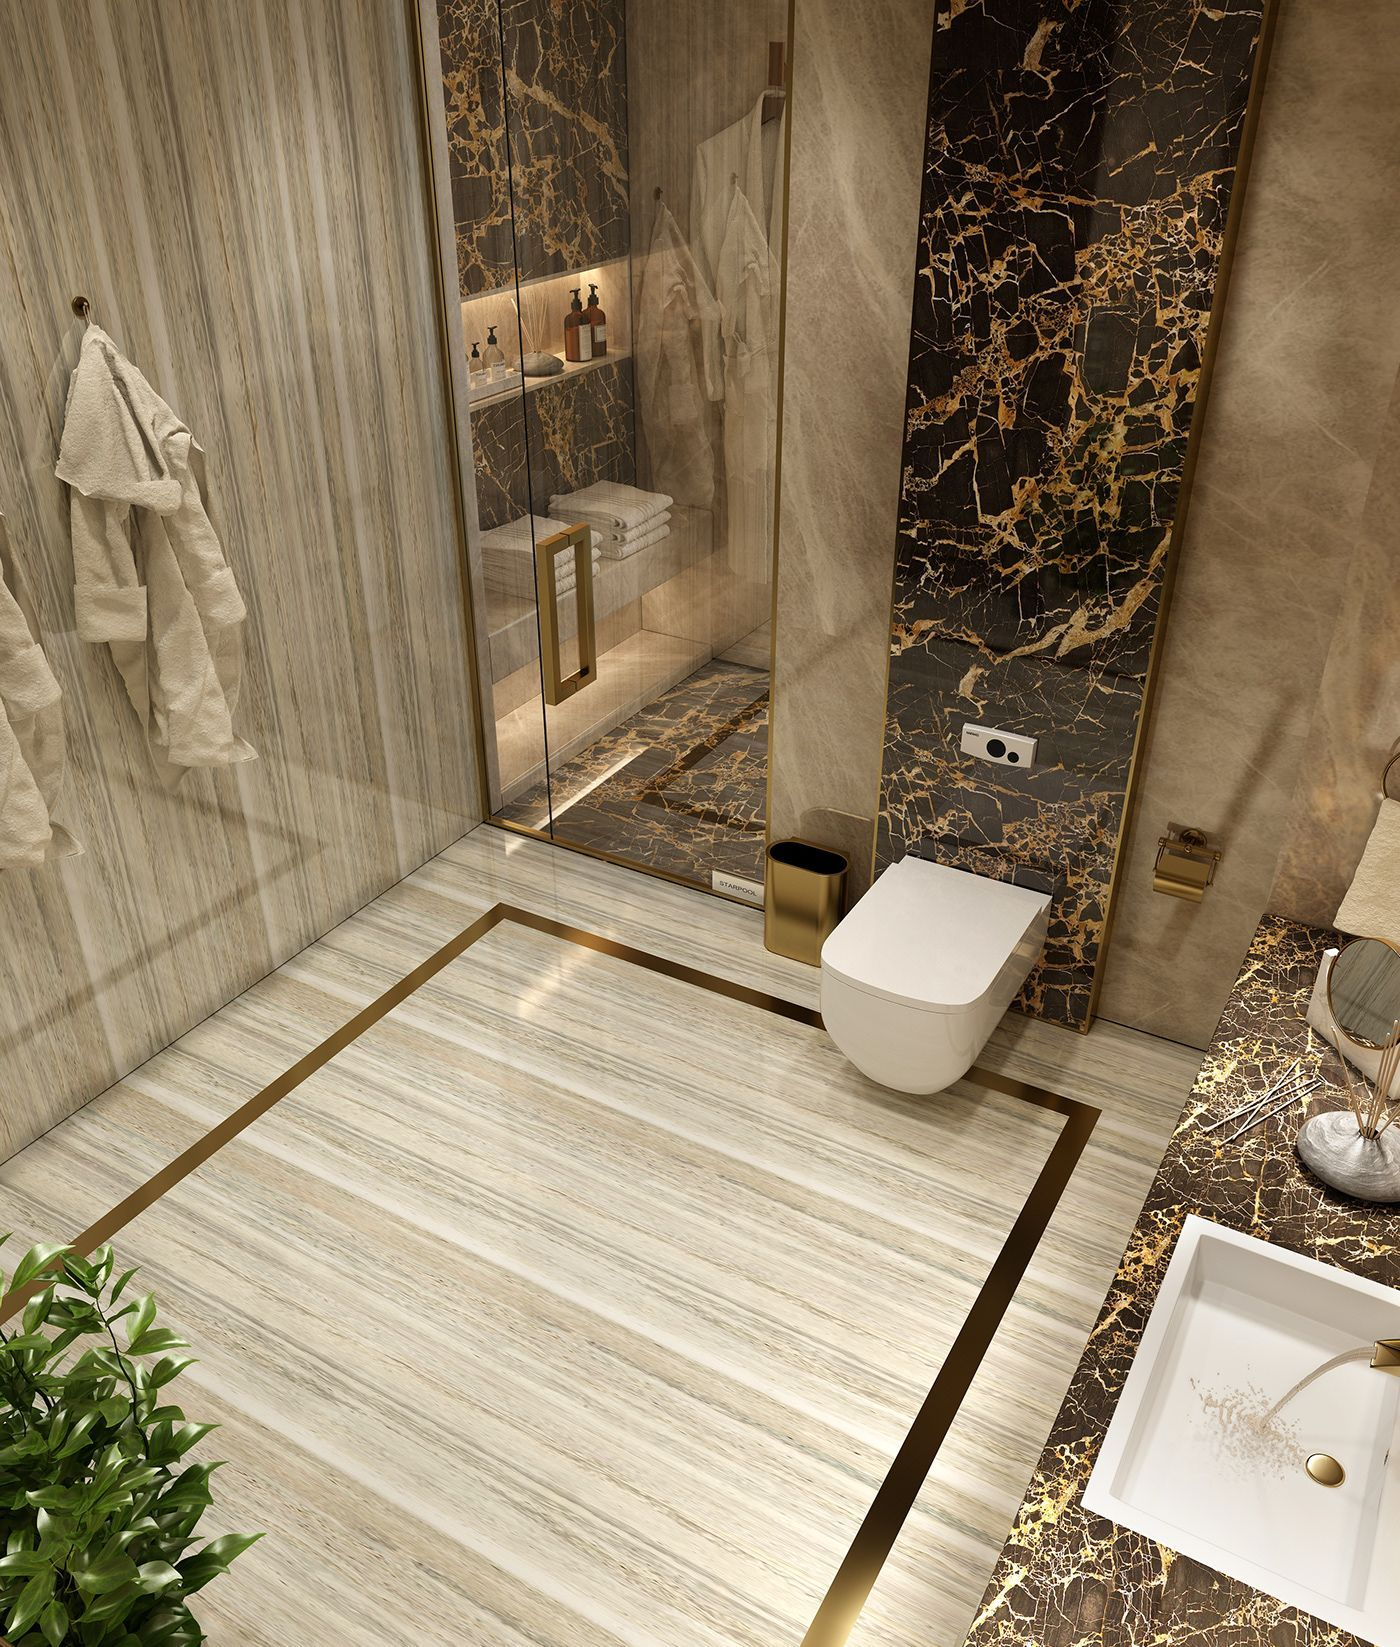 Modern Minimalistic Bathroom Design Ideas For Your Home See More Clicking On The Image Bathroom Inspiration Modern Bathroom Remodel Cost Luxury Bathroom